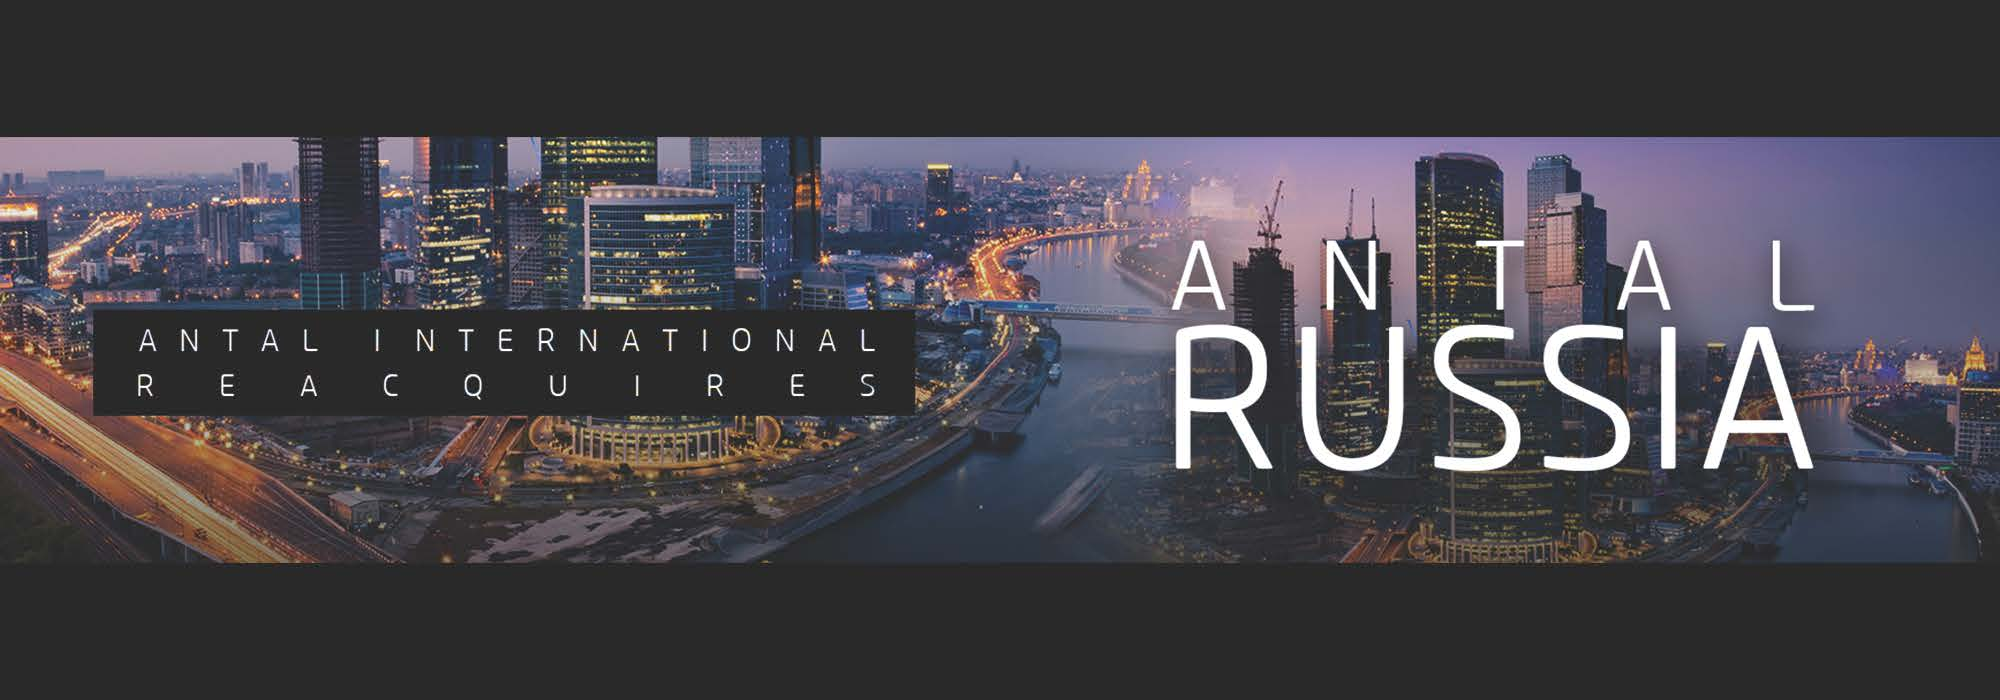 Antal International reacquires Antal Russia